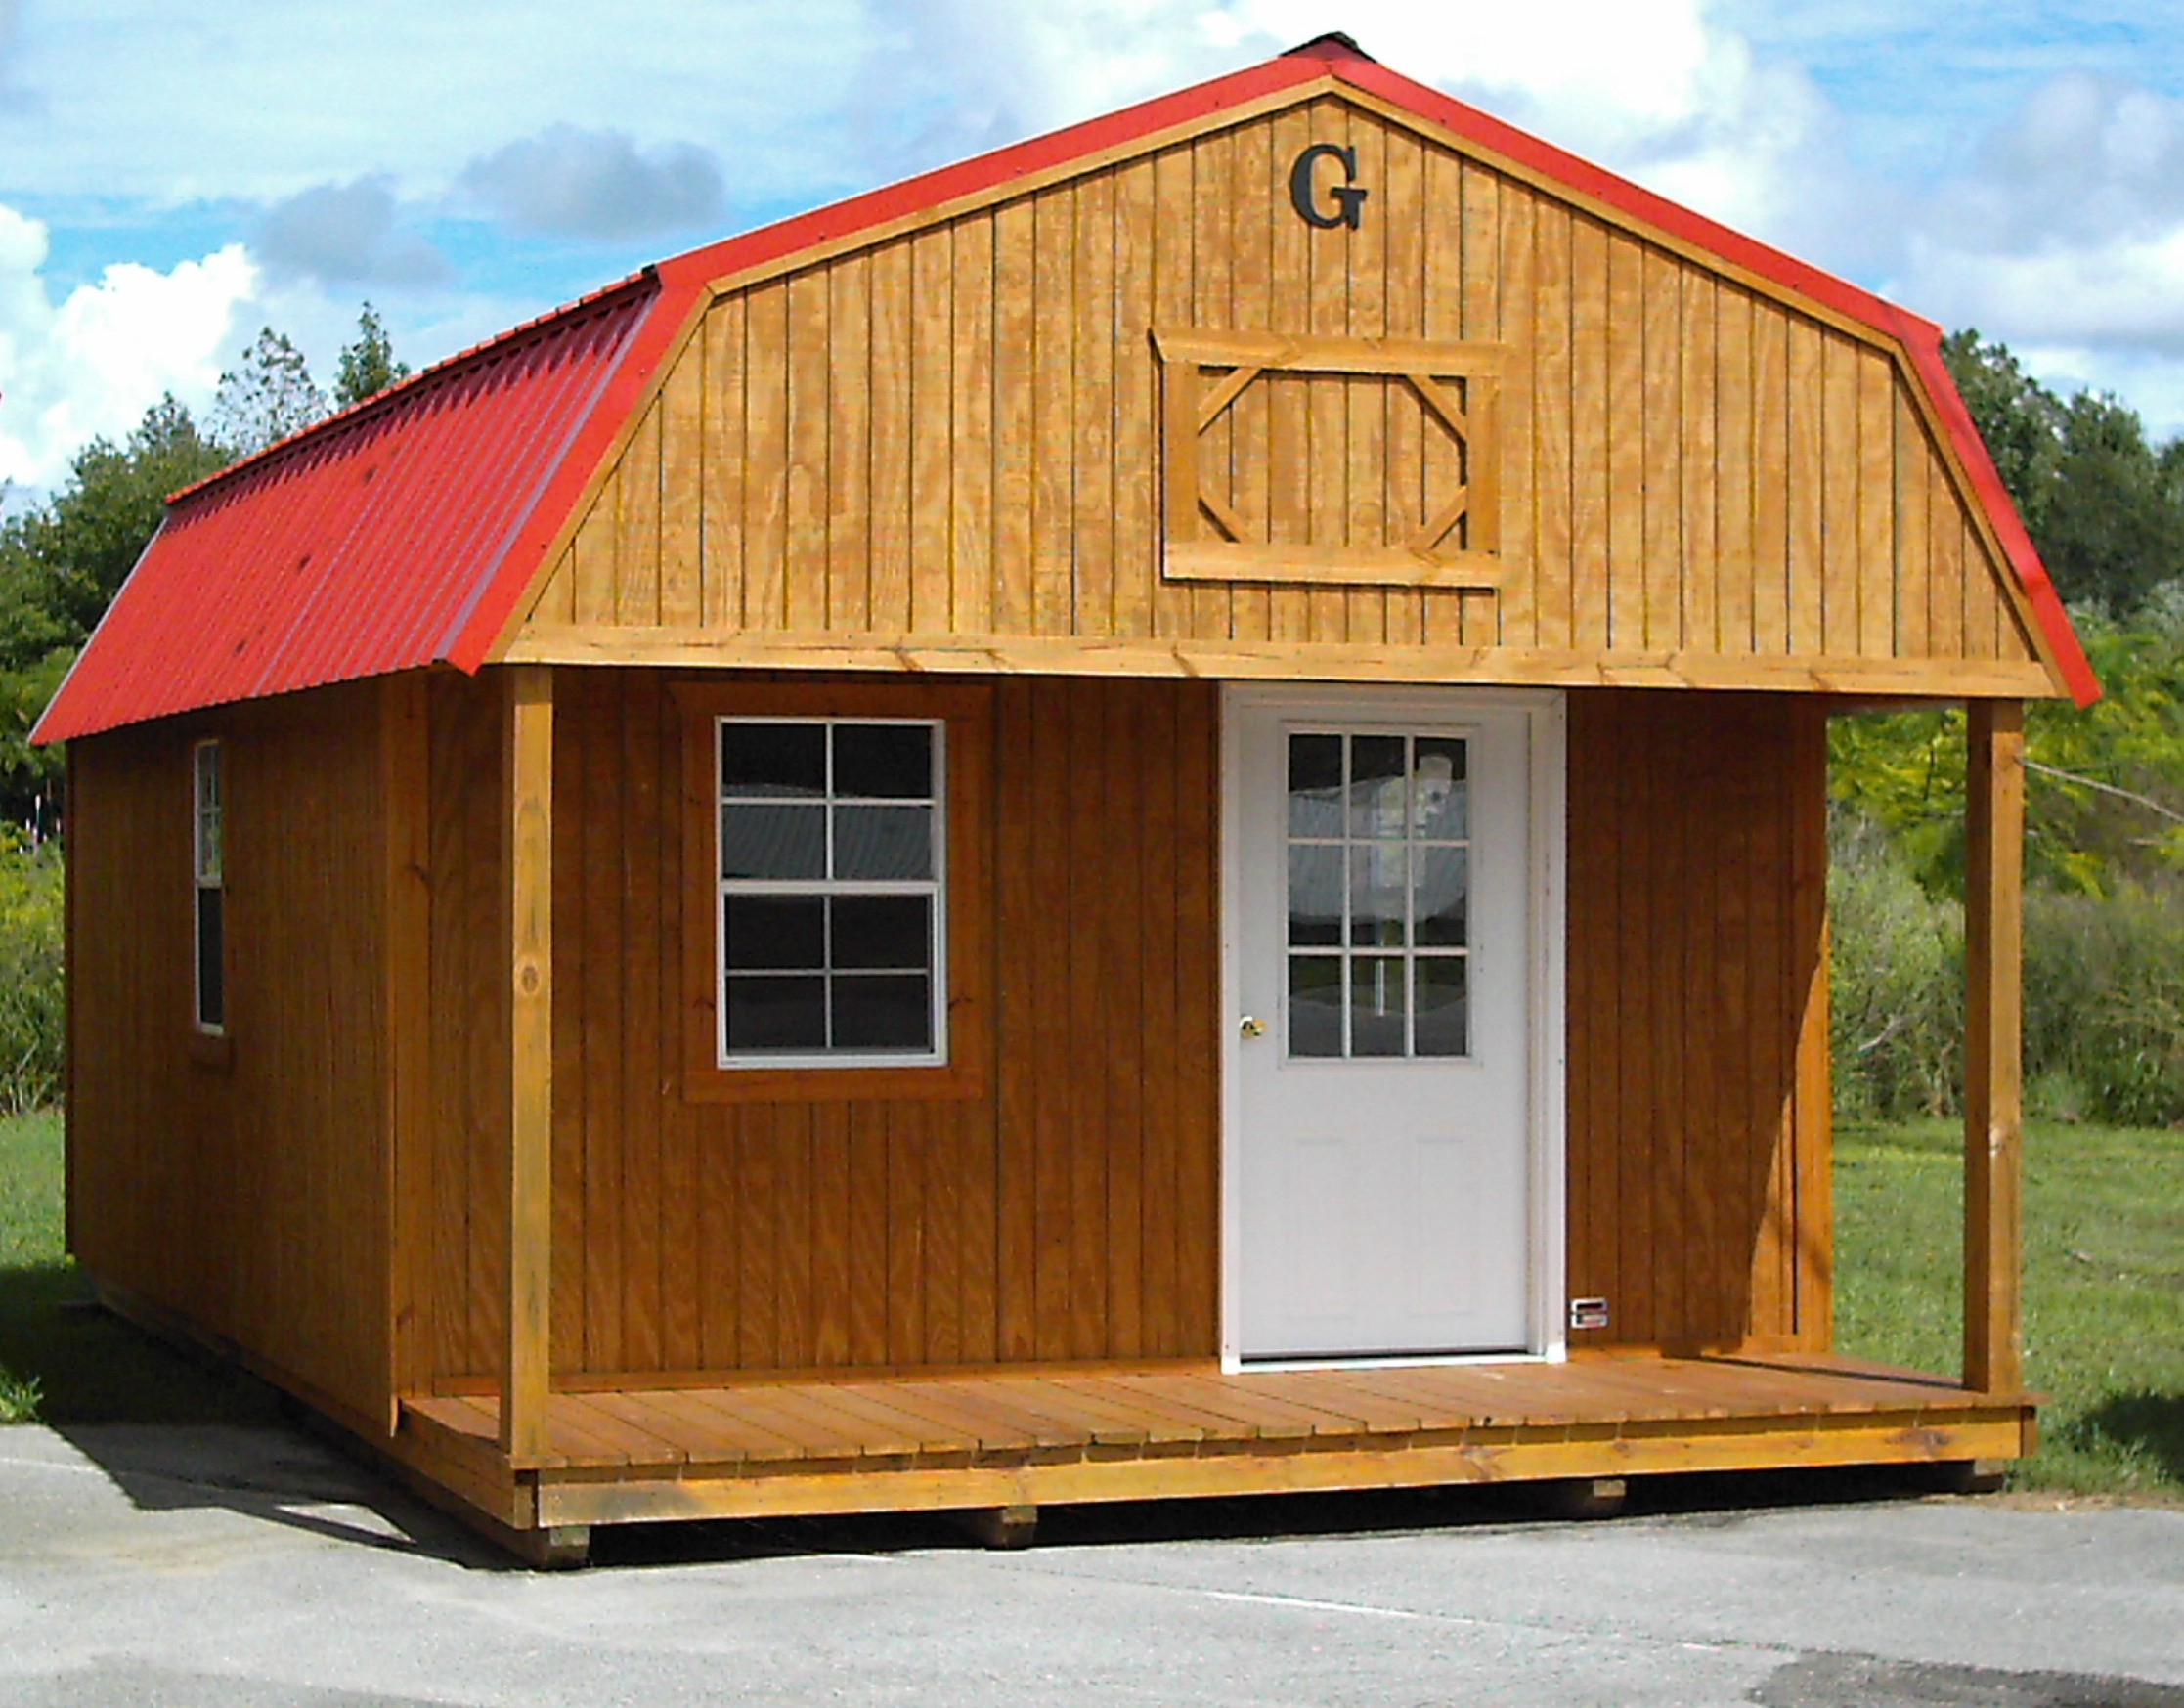 Portable Storage Shelters : Different types of portable storage buildings carehomedecor